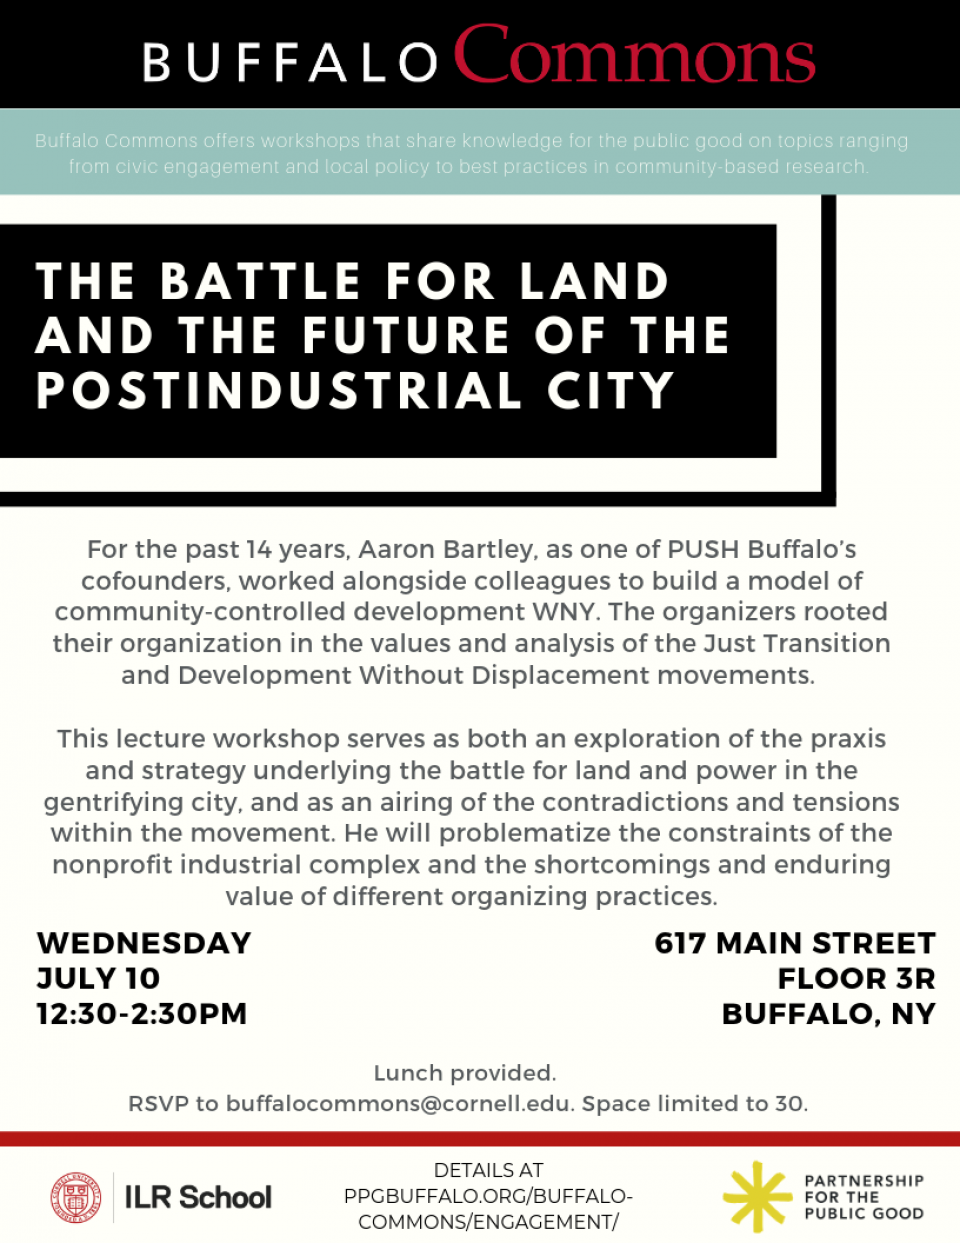 The Battle for Land and the Future of the Postindustrial City